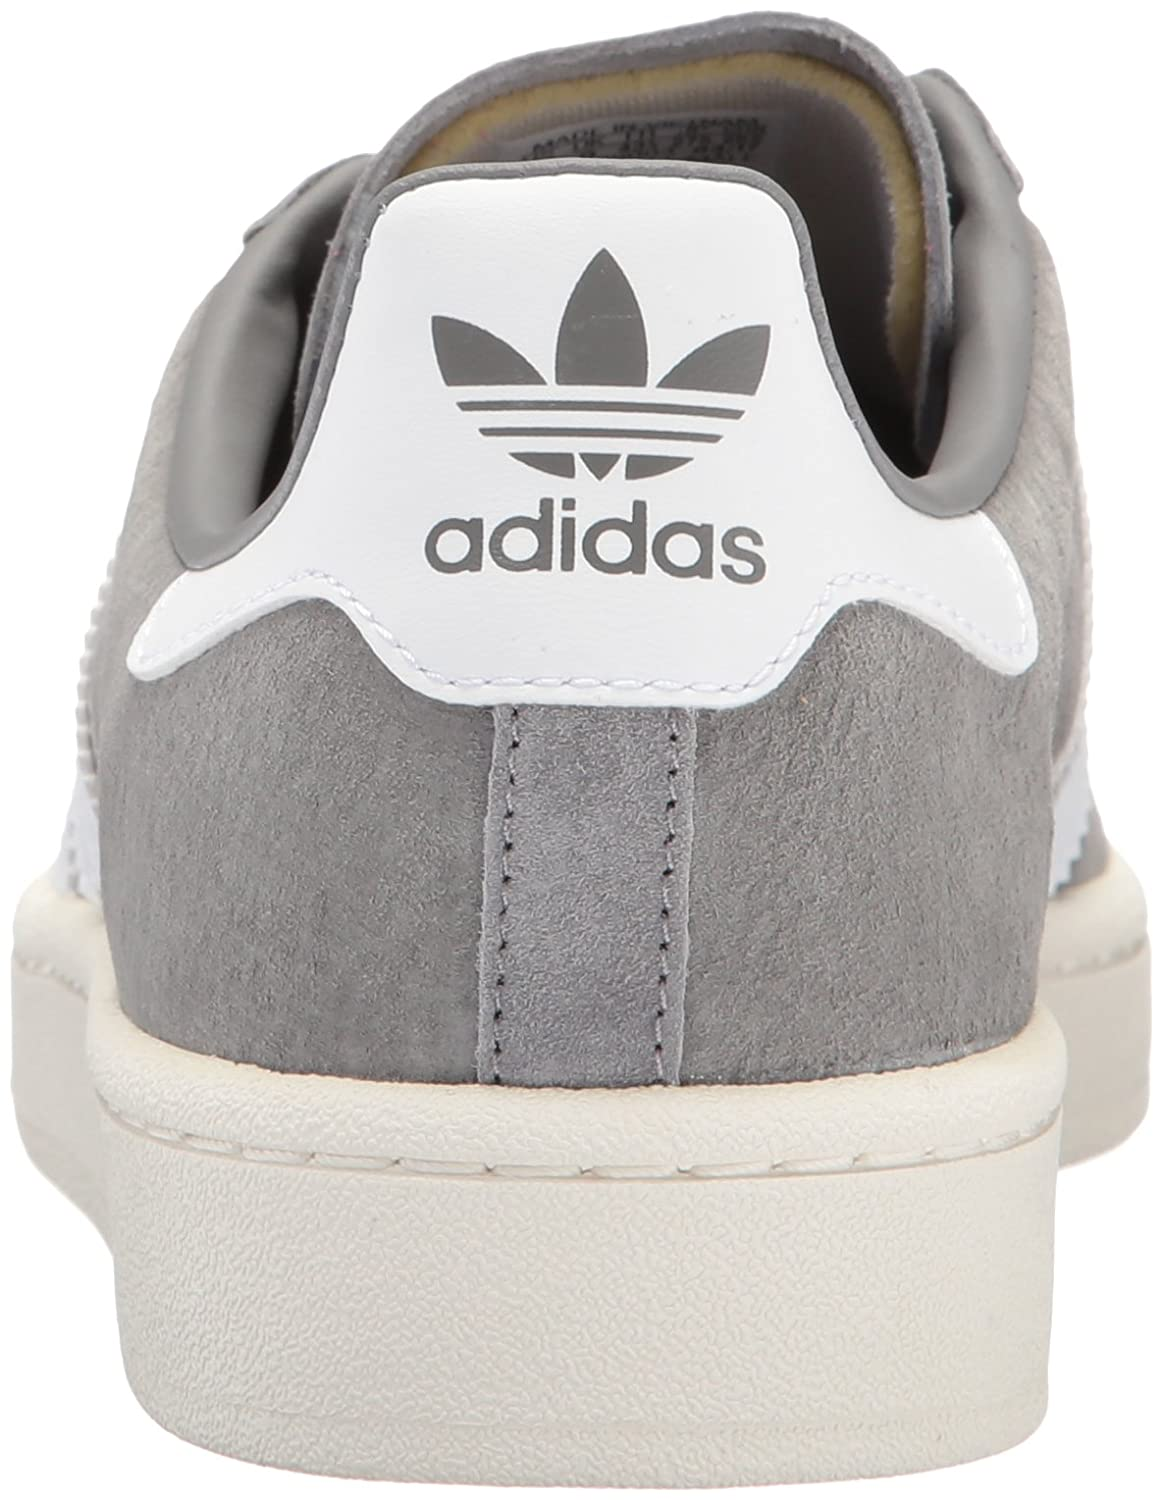 Adidas-Campus-Men-039-s-Casual-Fashion-Sneakers-Retro-Athletic-Shoes thumbnail 36